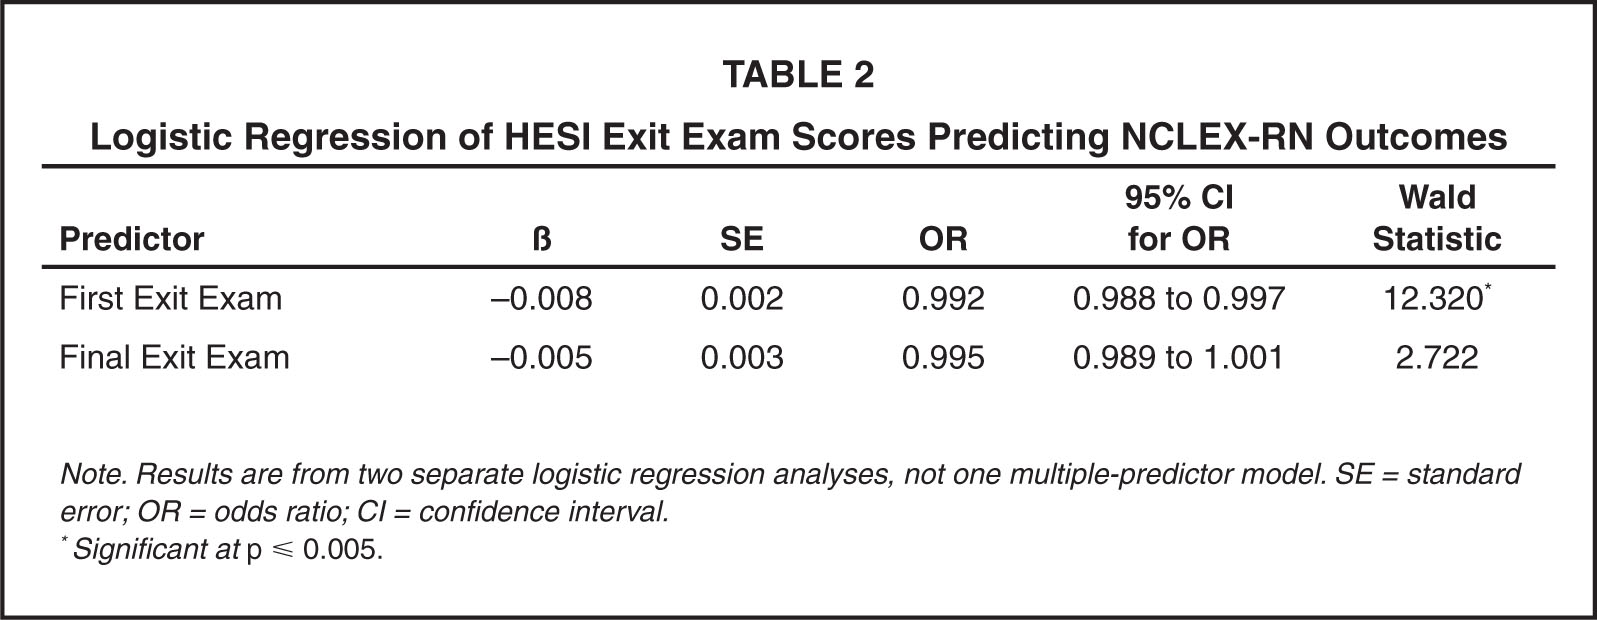 Logistic Regression of HESI Exit Exam Scores Predicting NCLEX-RN Outcomes